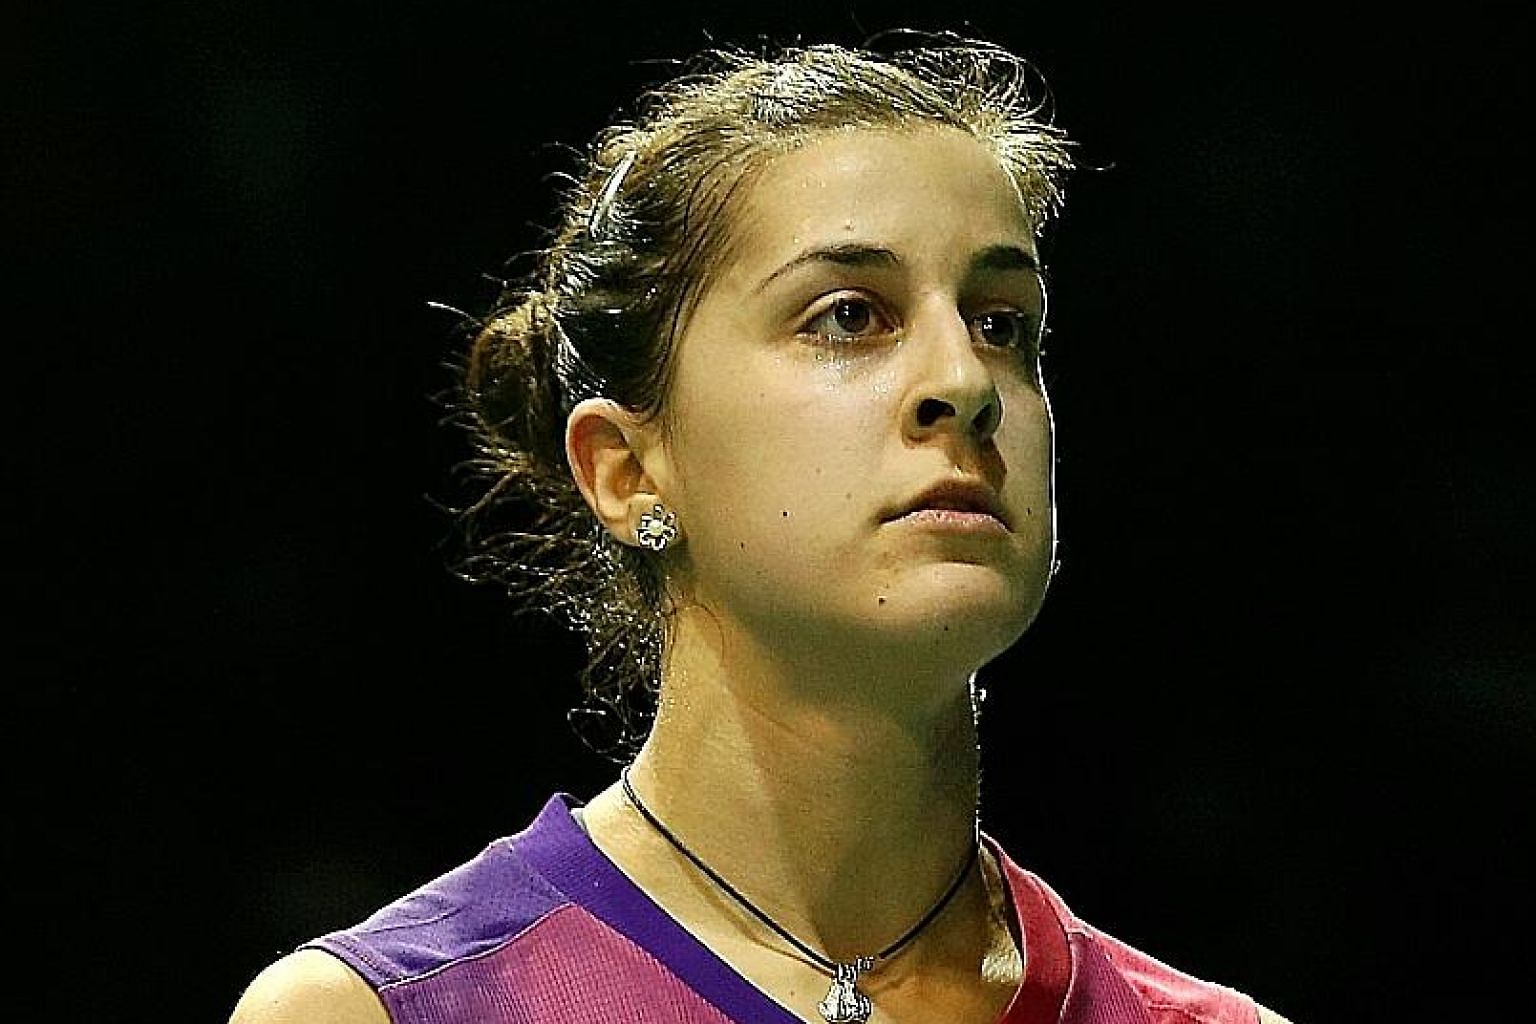 Among the stars coming for the OUE Singapore Open next month is reigning Olympic women's singles champion and world No. 4 Carolina Marin of Spain.